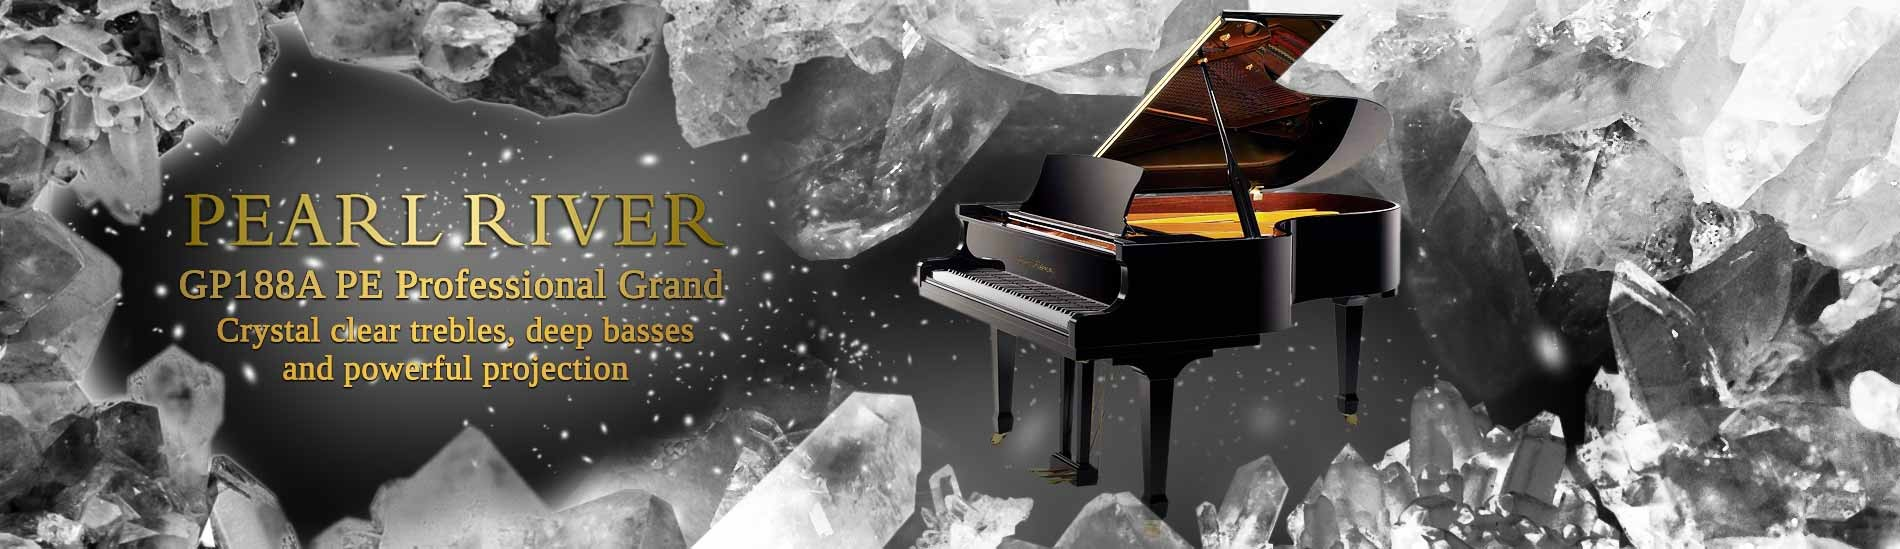 Grand Piano Pearl River GP188A PE Professional Grand - Crystal clear trebles, deep basses and powerful projection